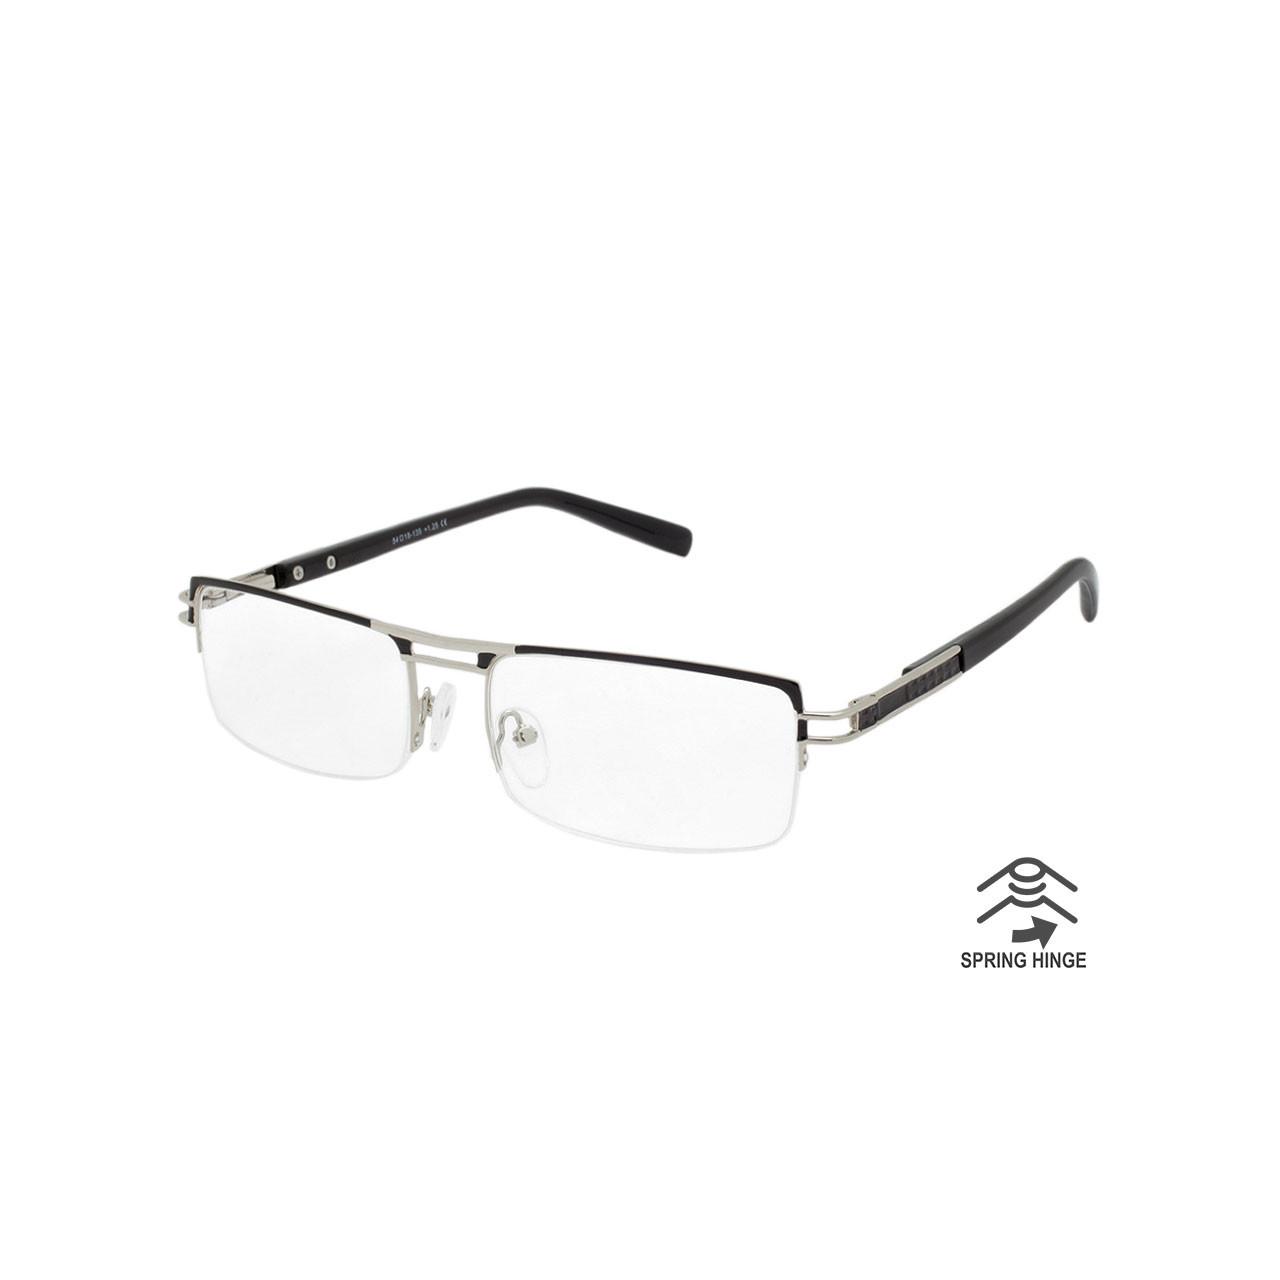 0a5f107ee Wholesale Assorted Colors Metal Spring Hinge Semi-Rimless Readers ...